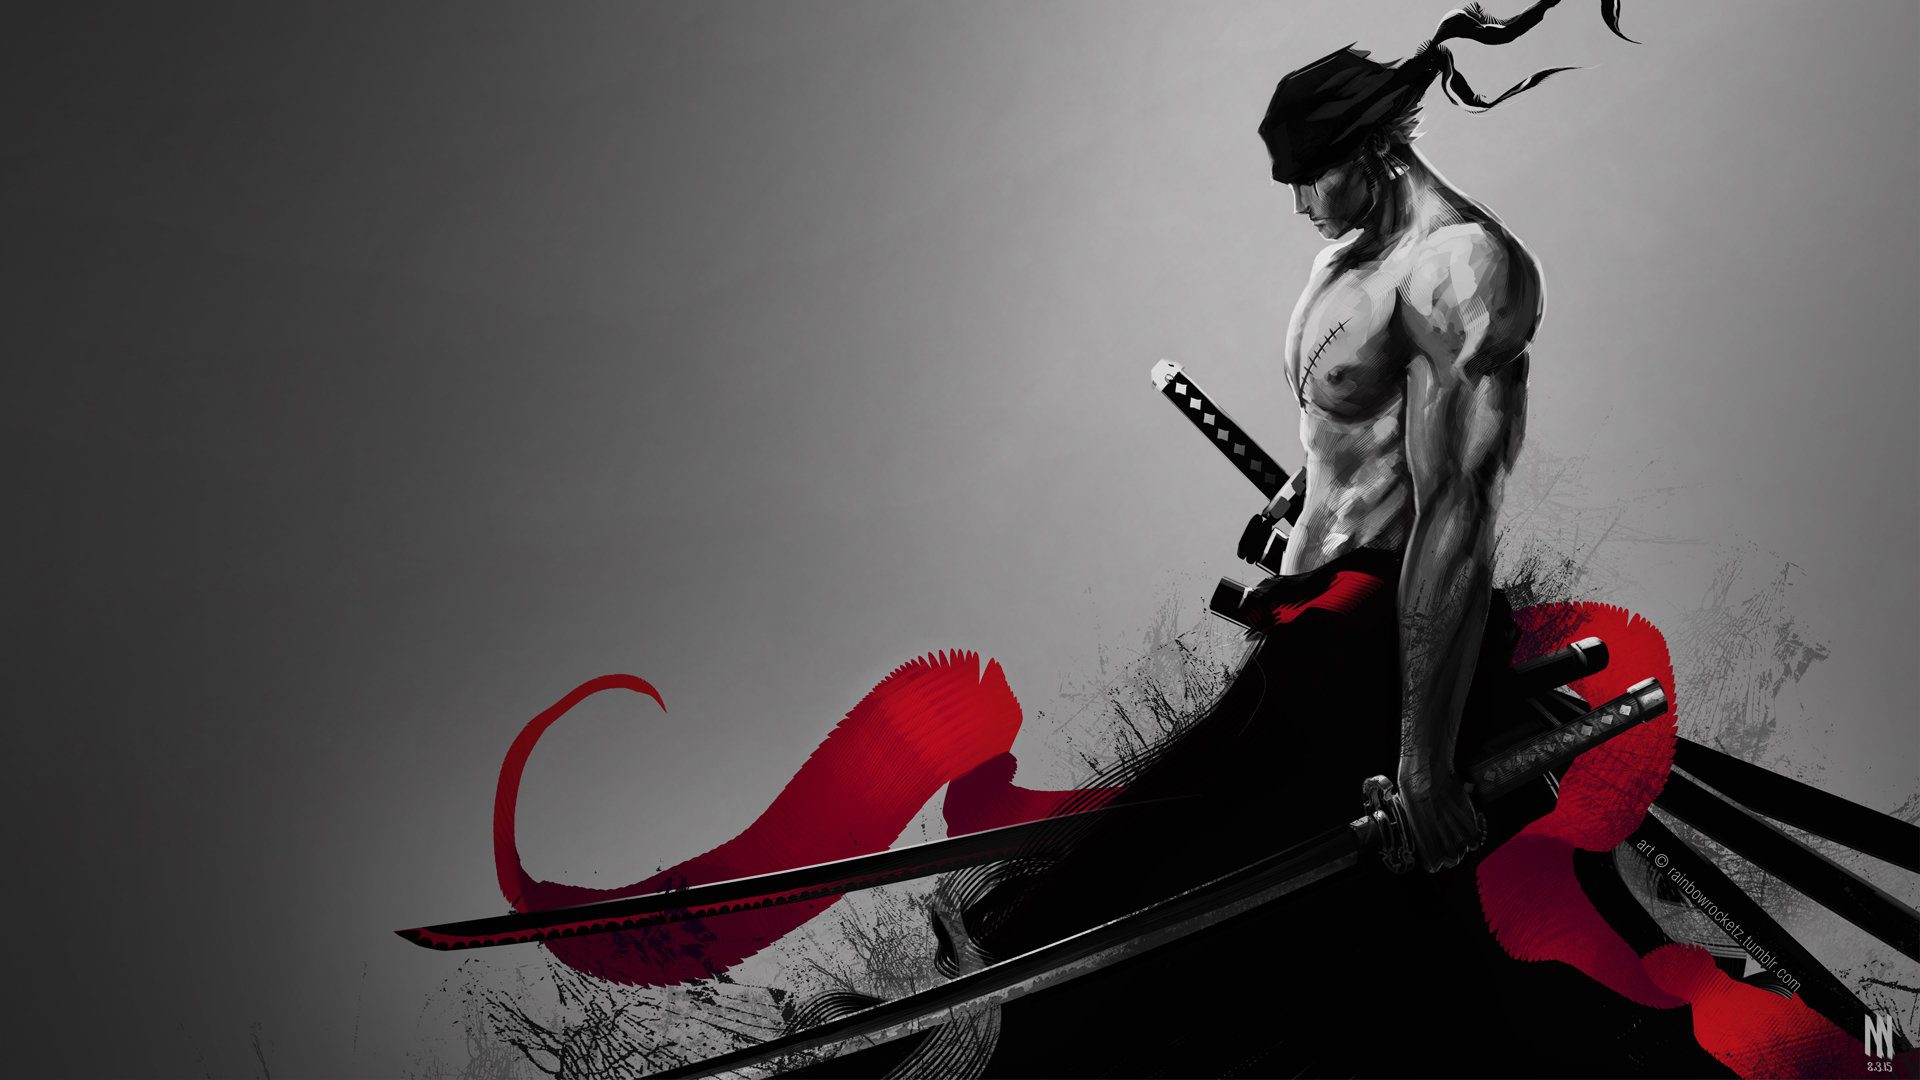 78 Best images about roronoa zoro on Pinterest | Wallpaper for